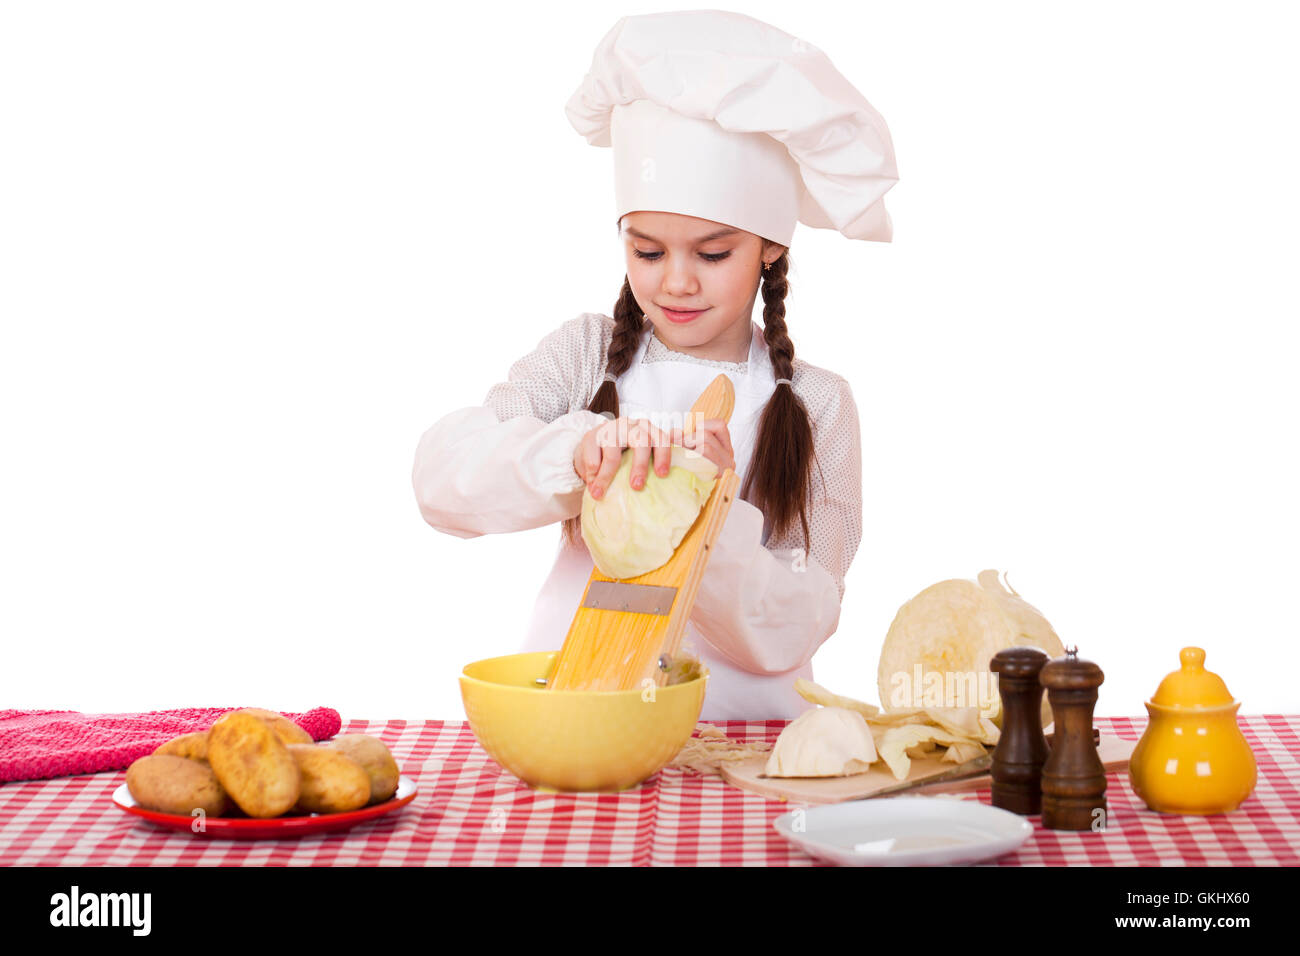 White apron and hat - Portrait Of A Little Girl In A White Apron And Chefs Hat Shred Cabbage In The Kitchen Isolated On White Background